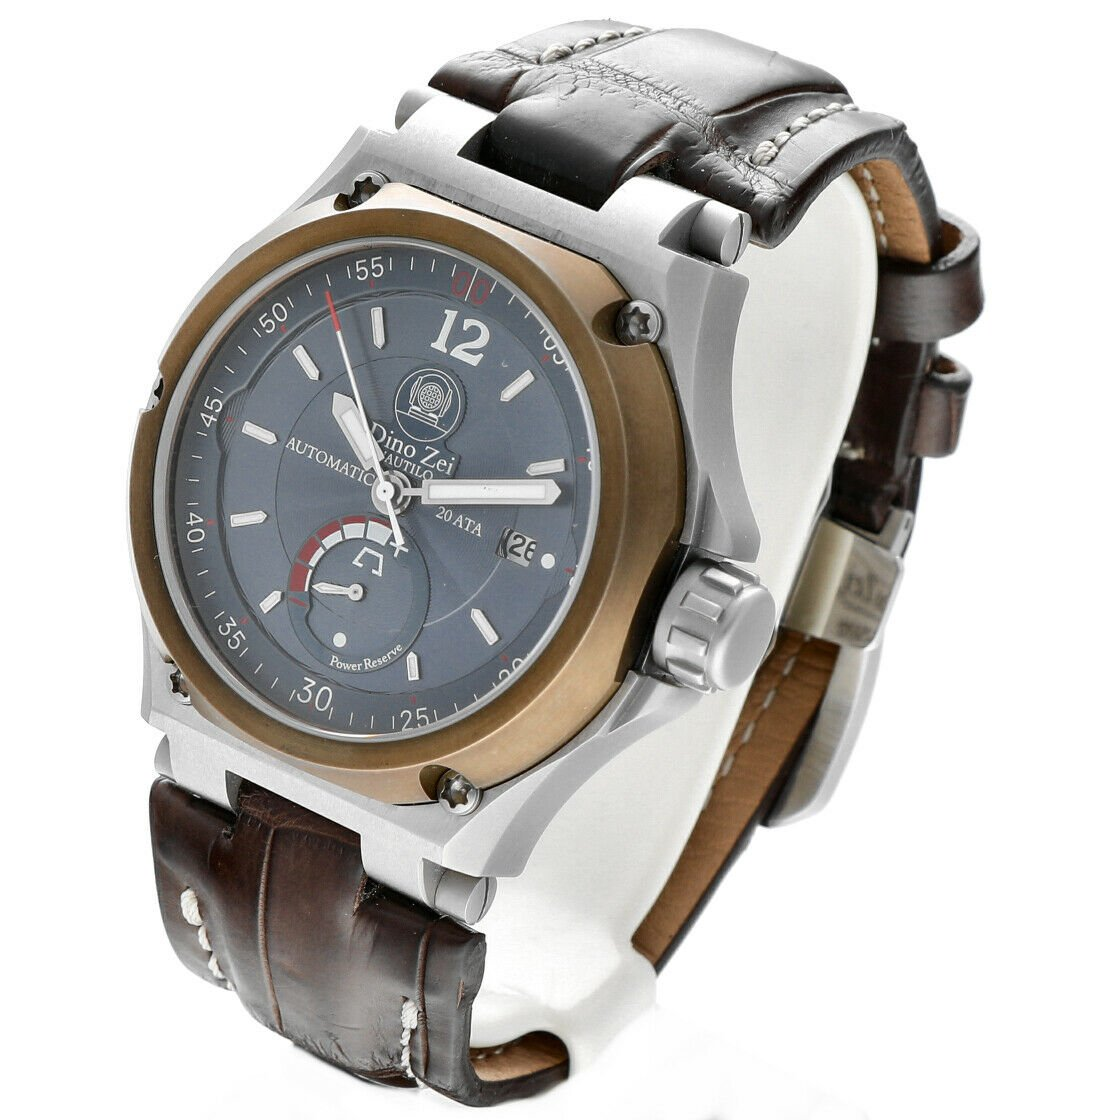 Dino Zei Nautilo Limited Edition 11007 Steel Leather Automatic Mens Watch 124232242502 2